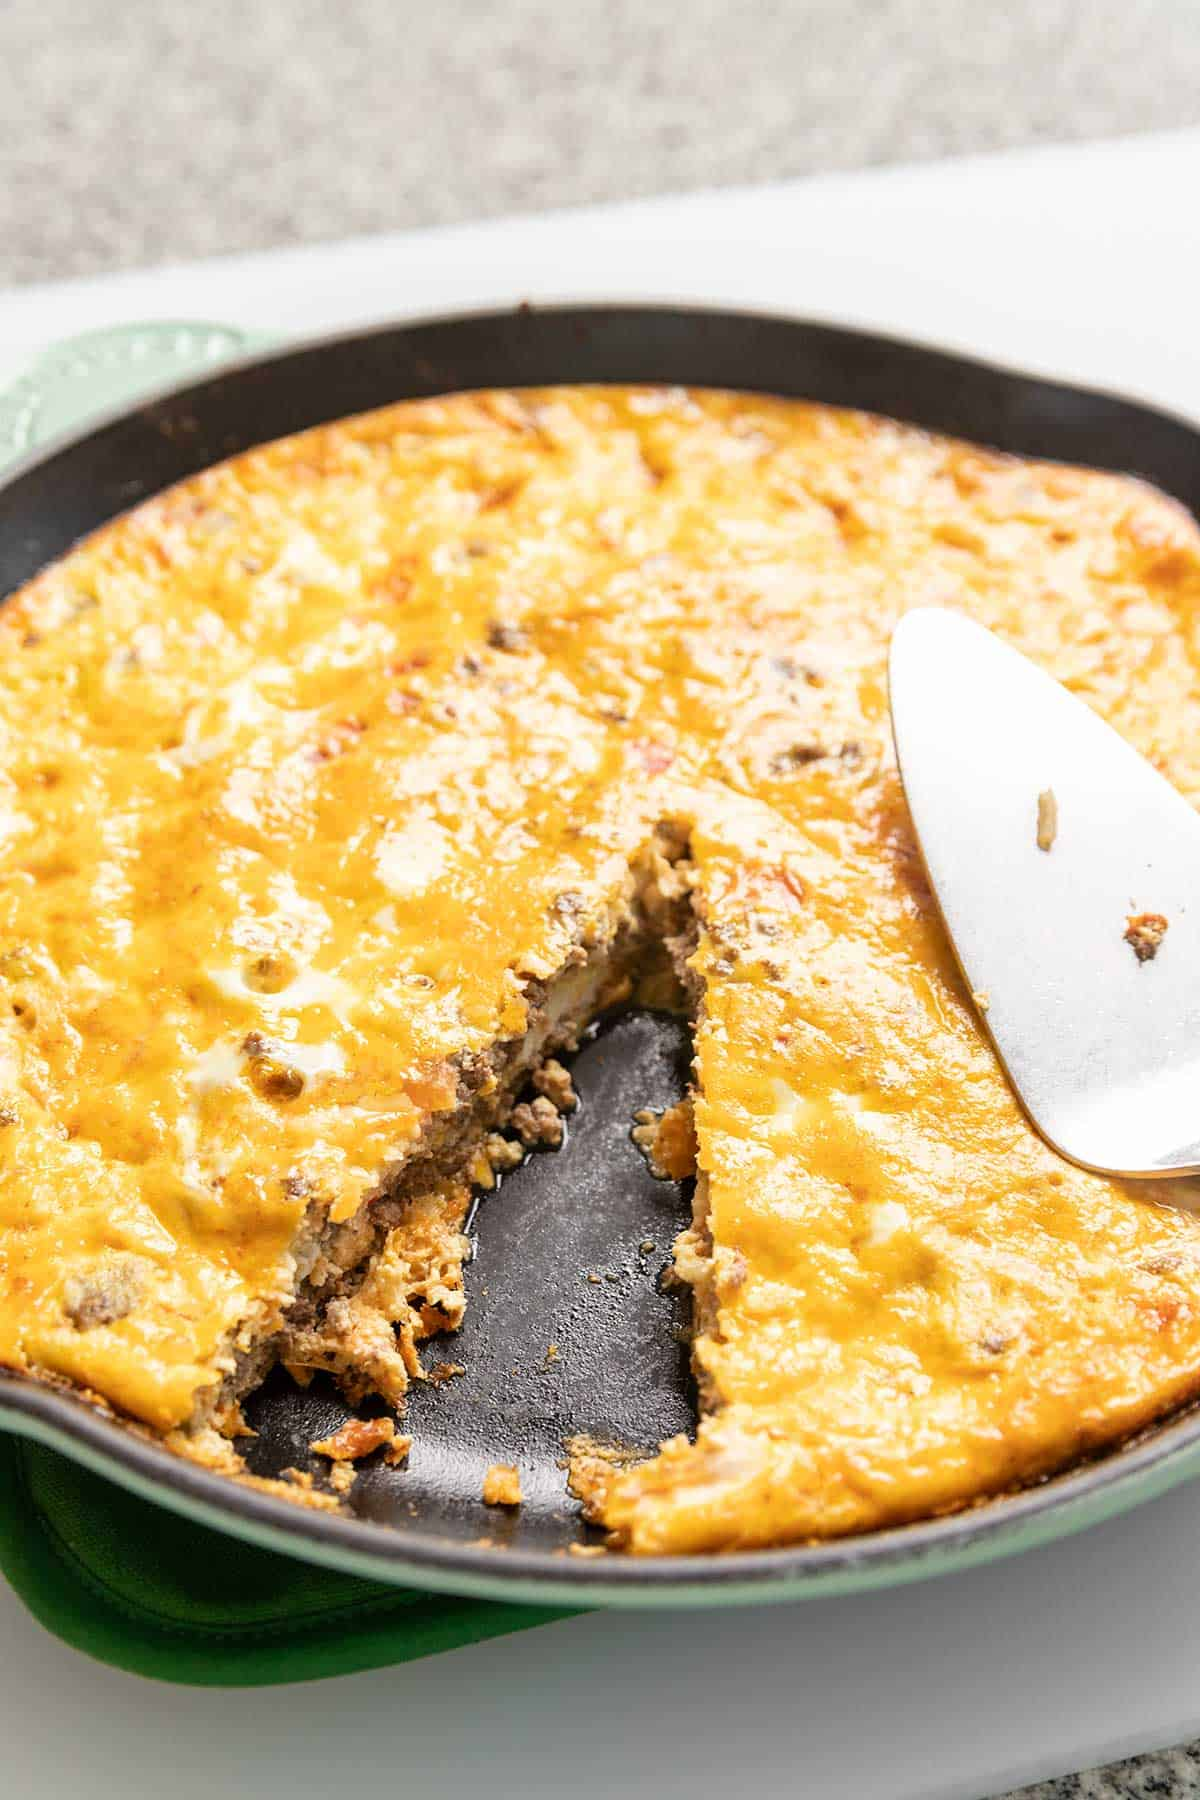 KETO TACO PIE IN A SKILLET